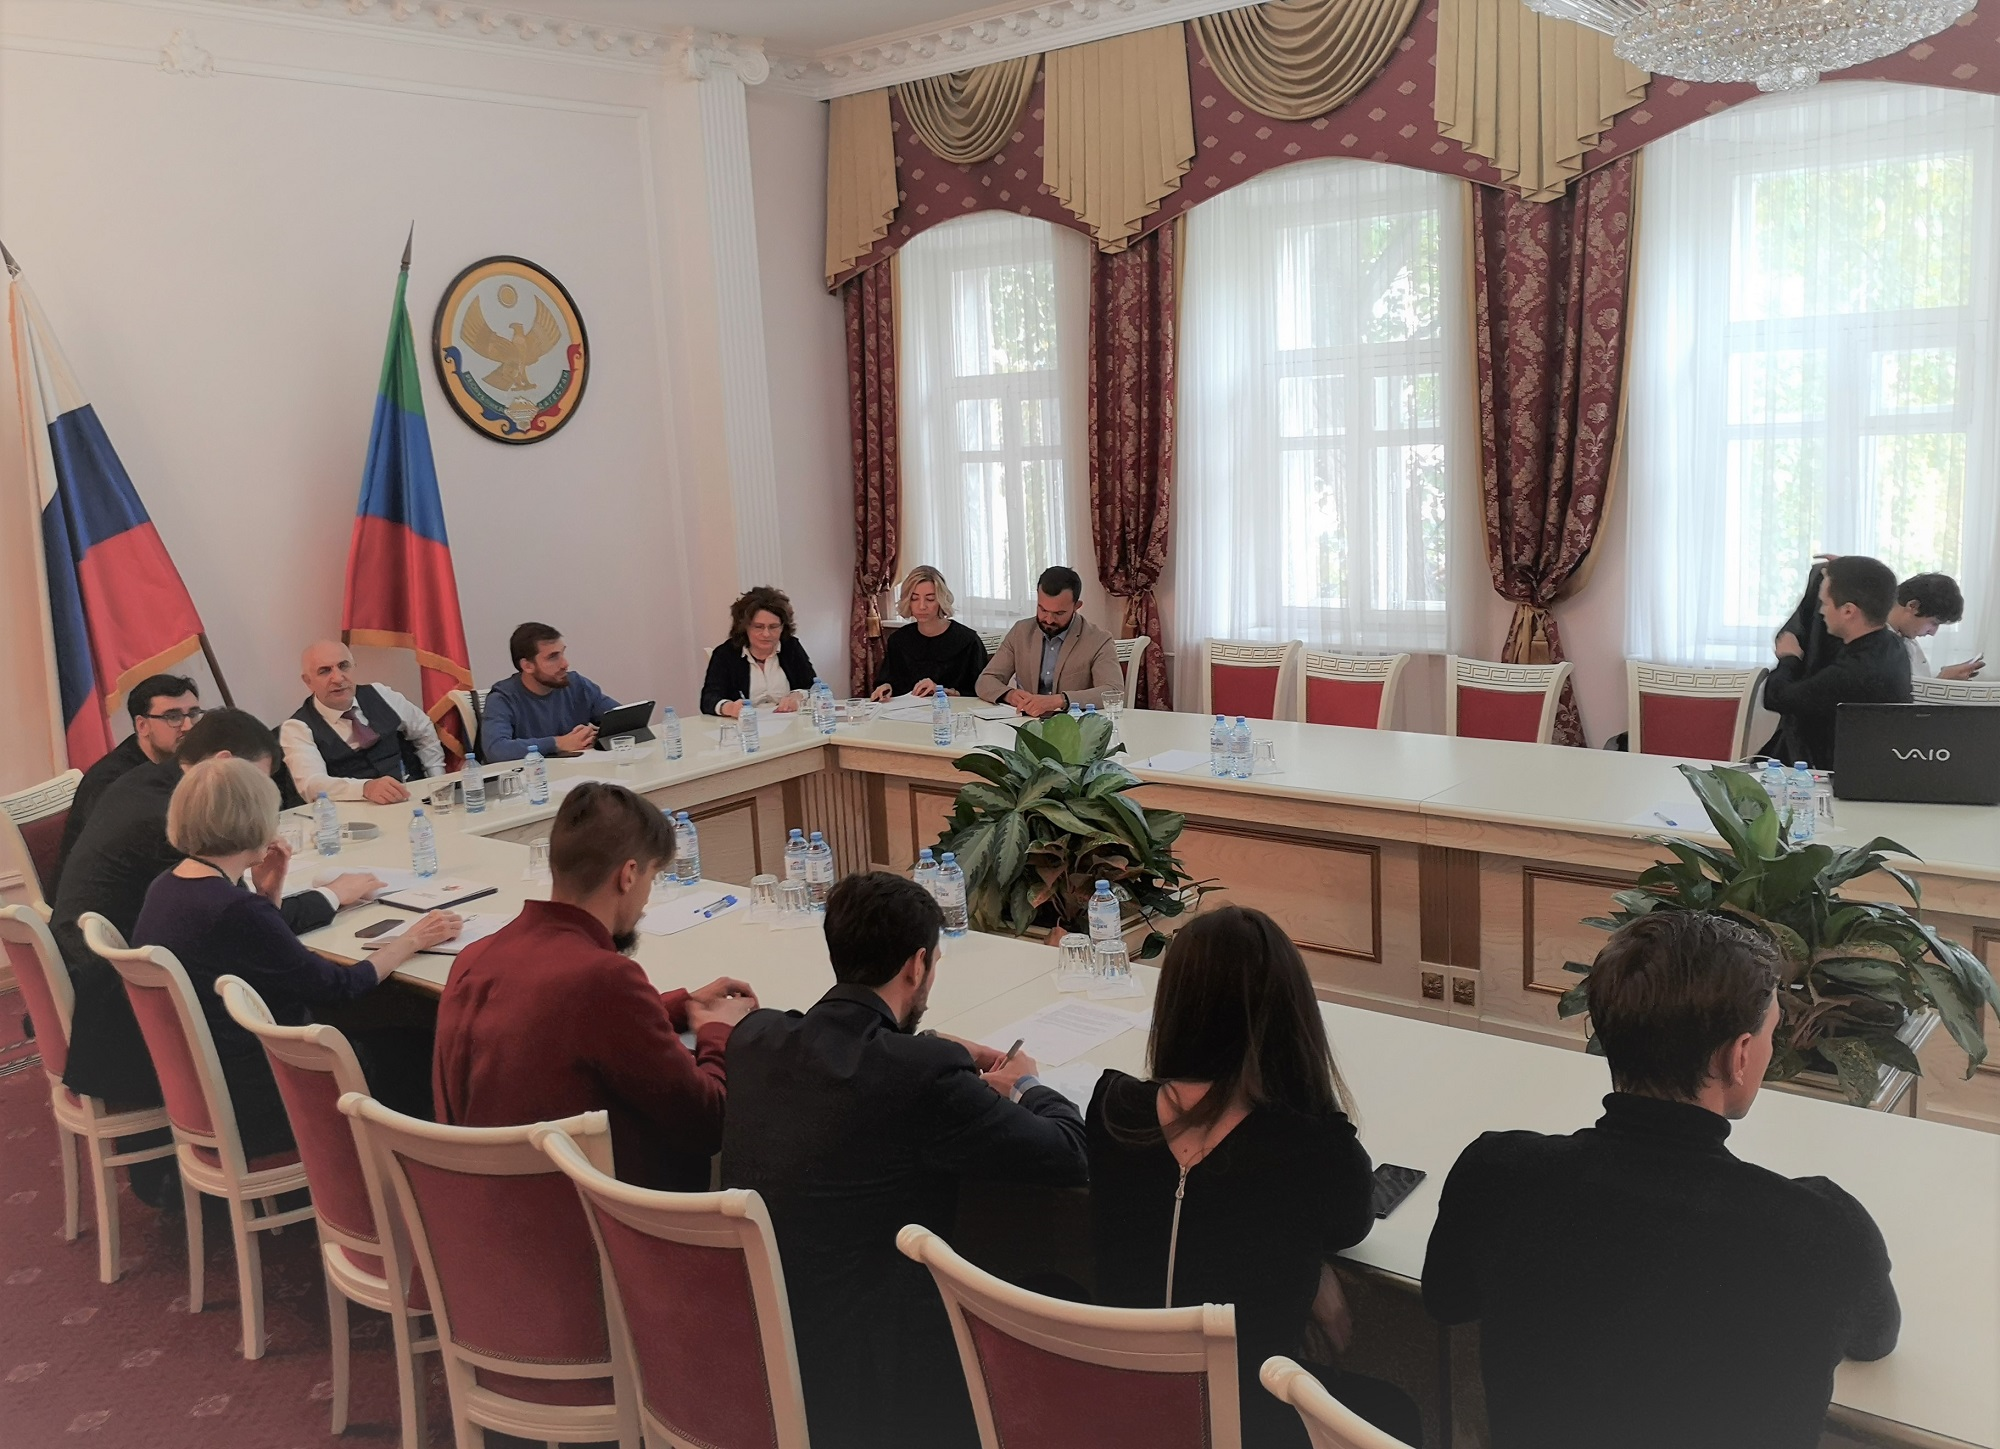 The Permanent Mission of the Republic of Dagestan hosted a preliminary presentation of the finalists' projects